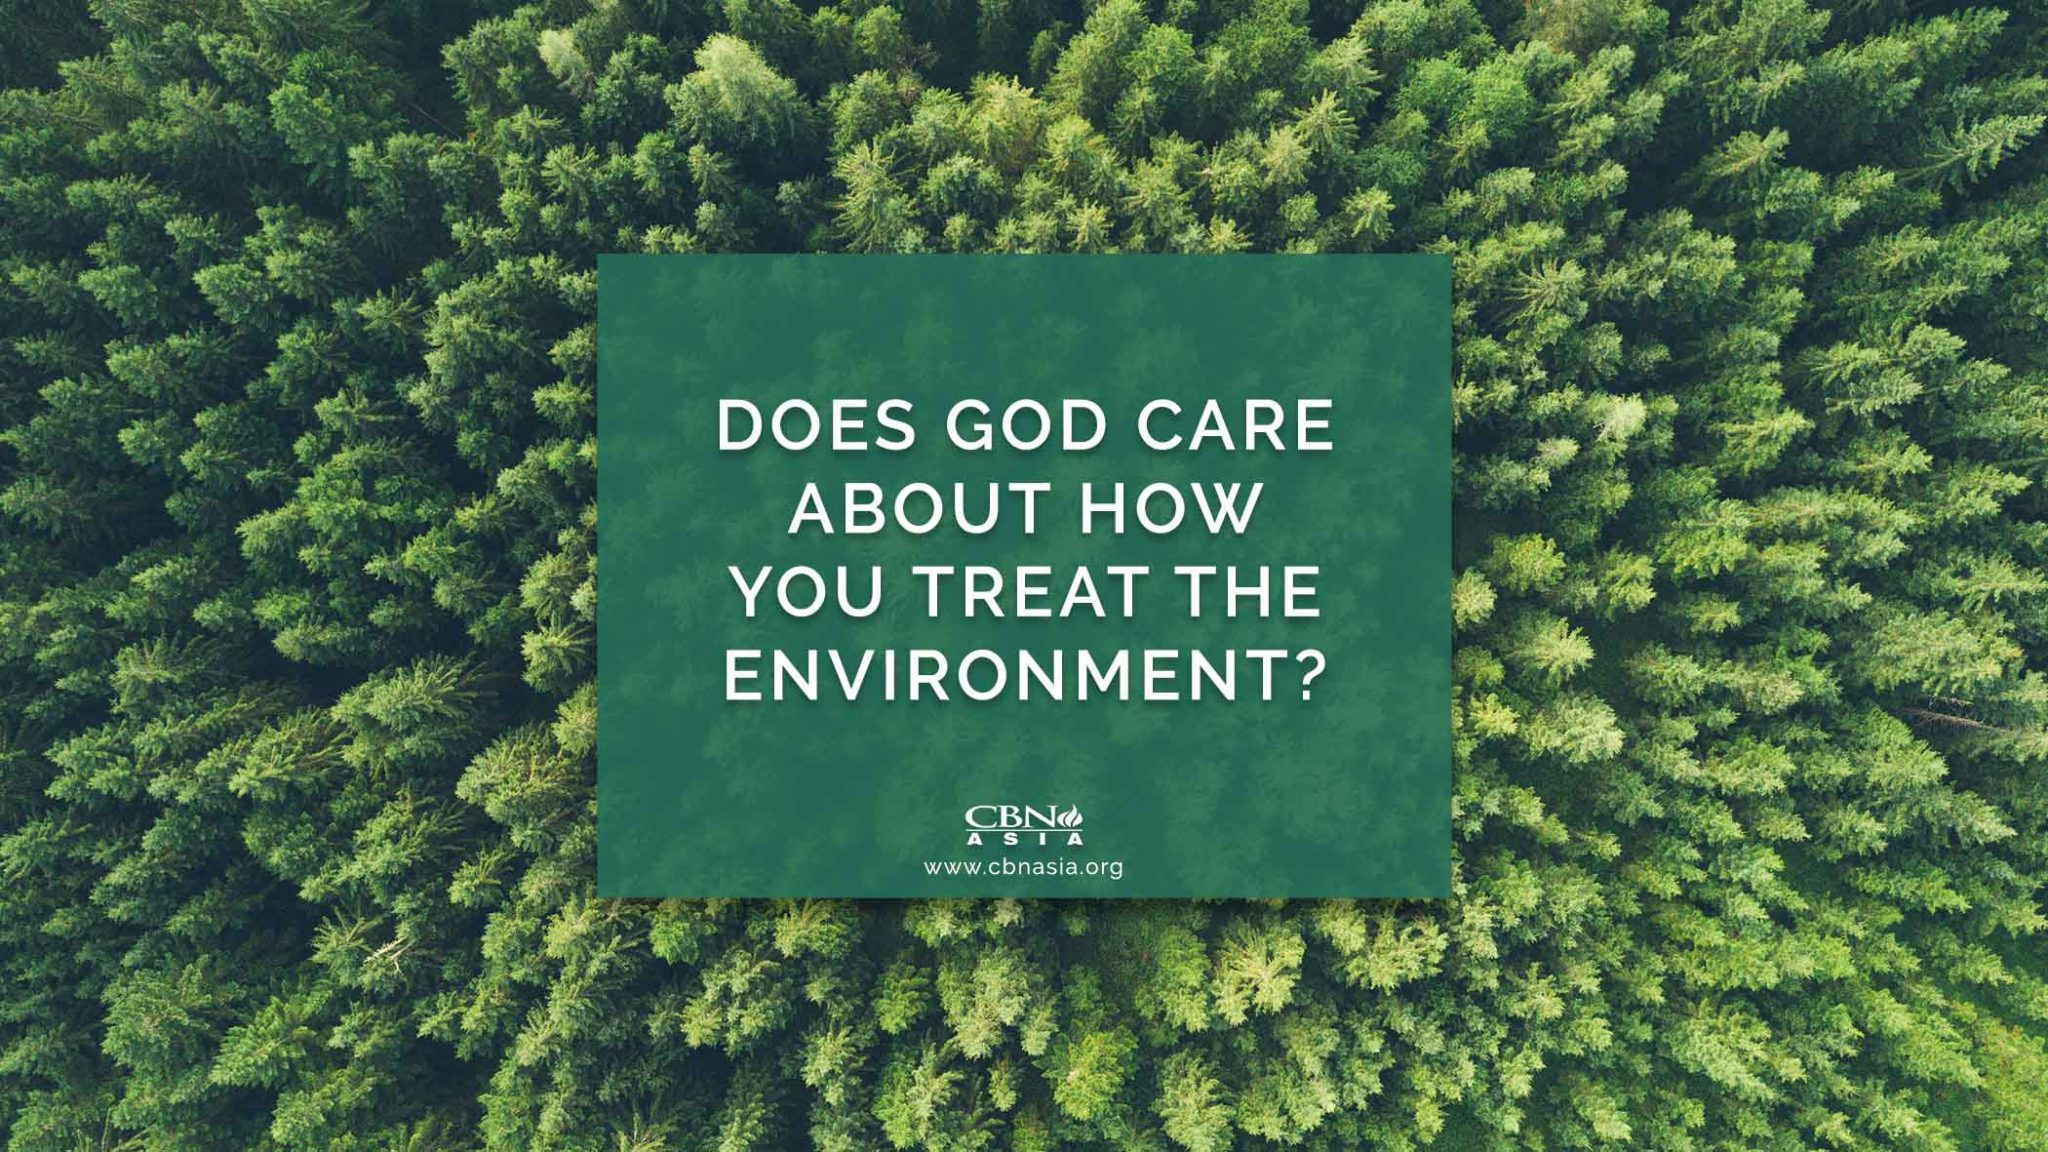 Does God Care About How You Treat the Environment?